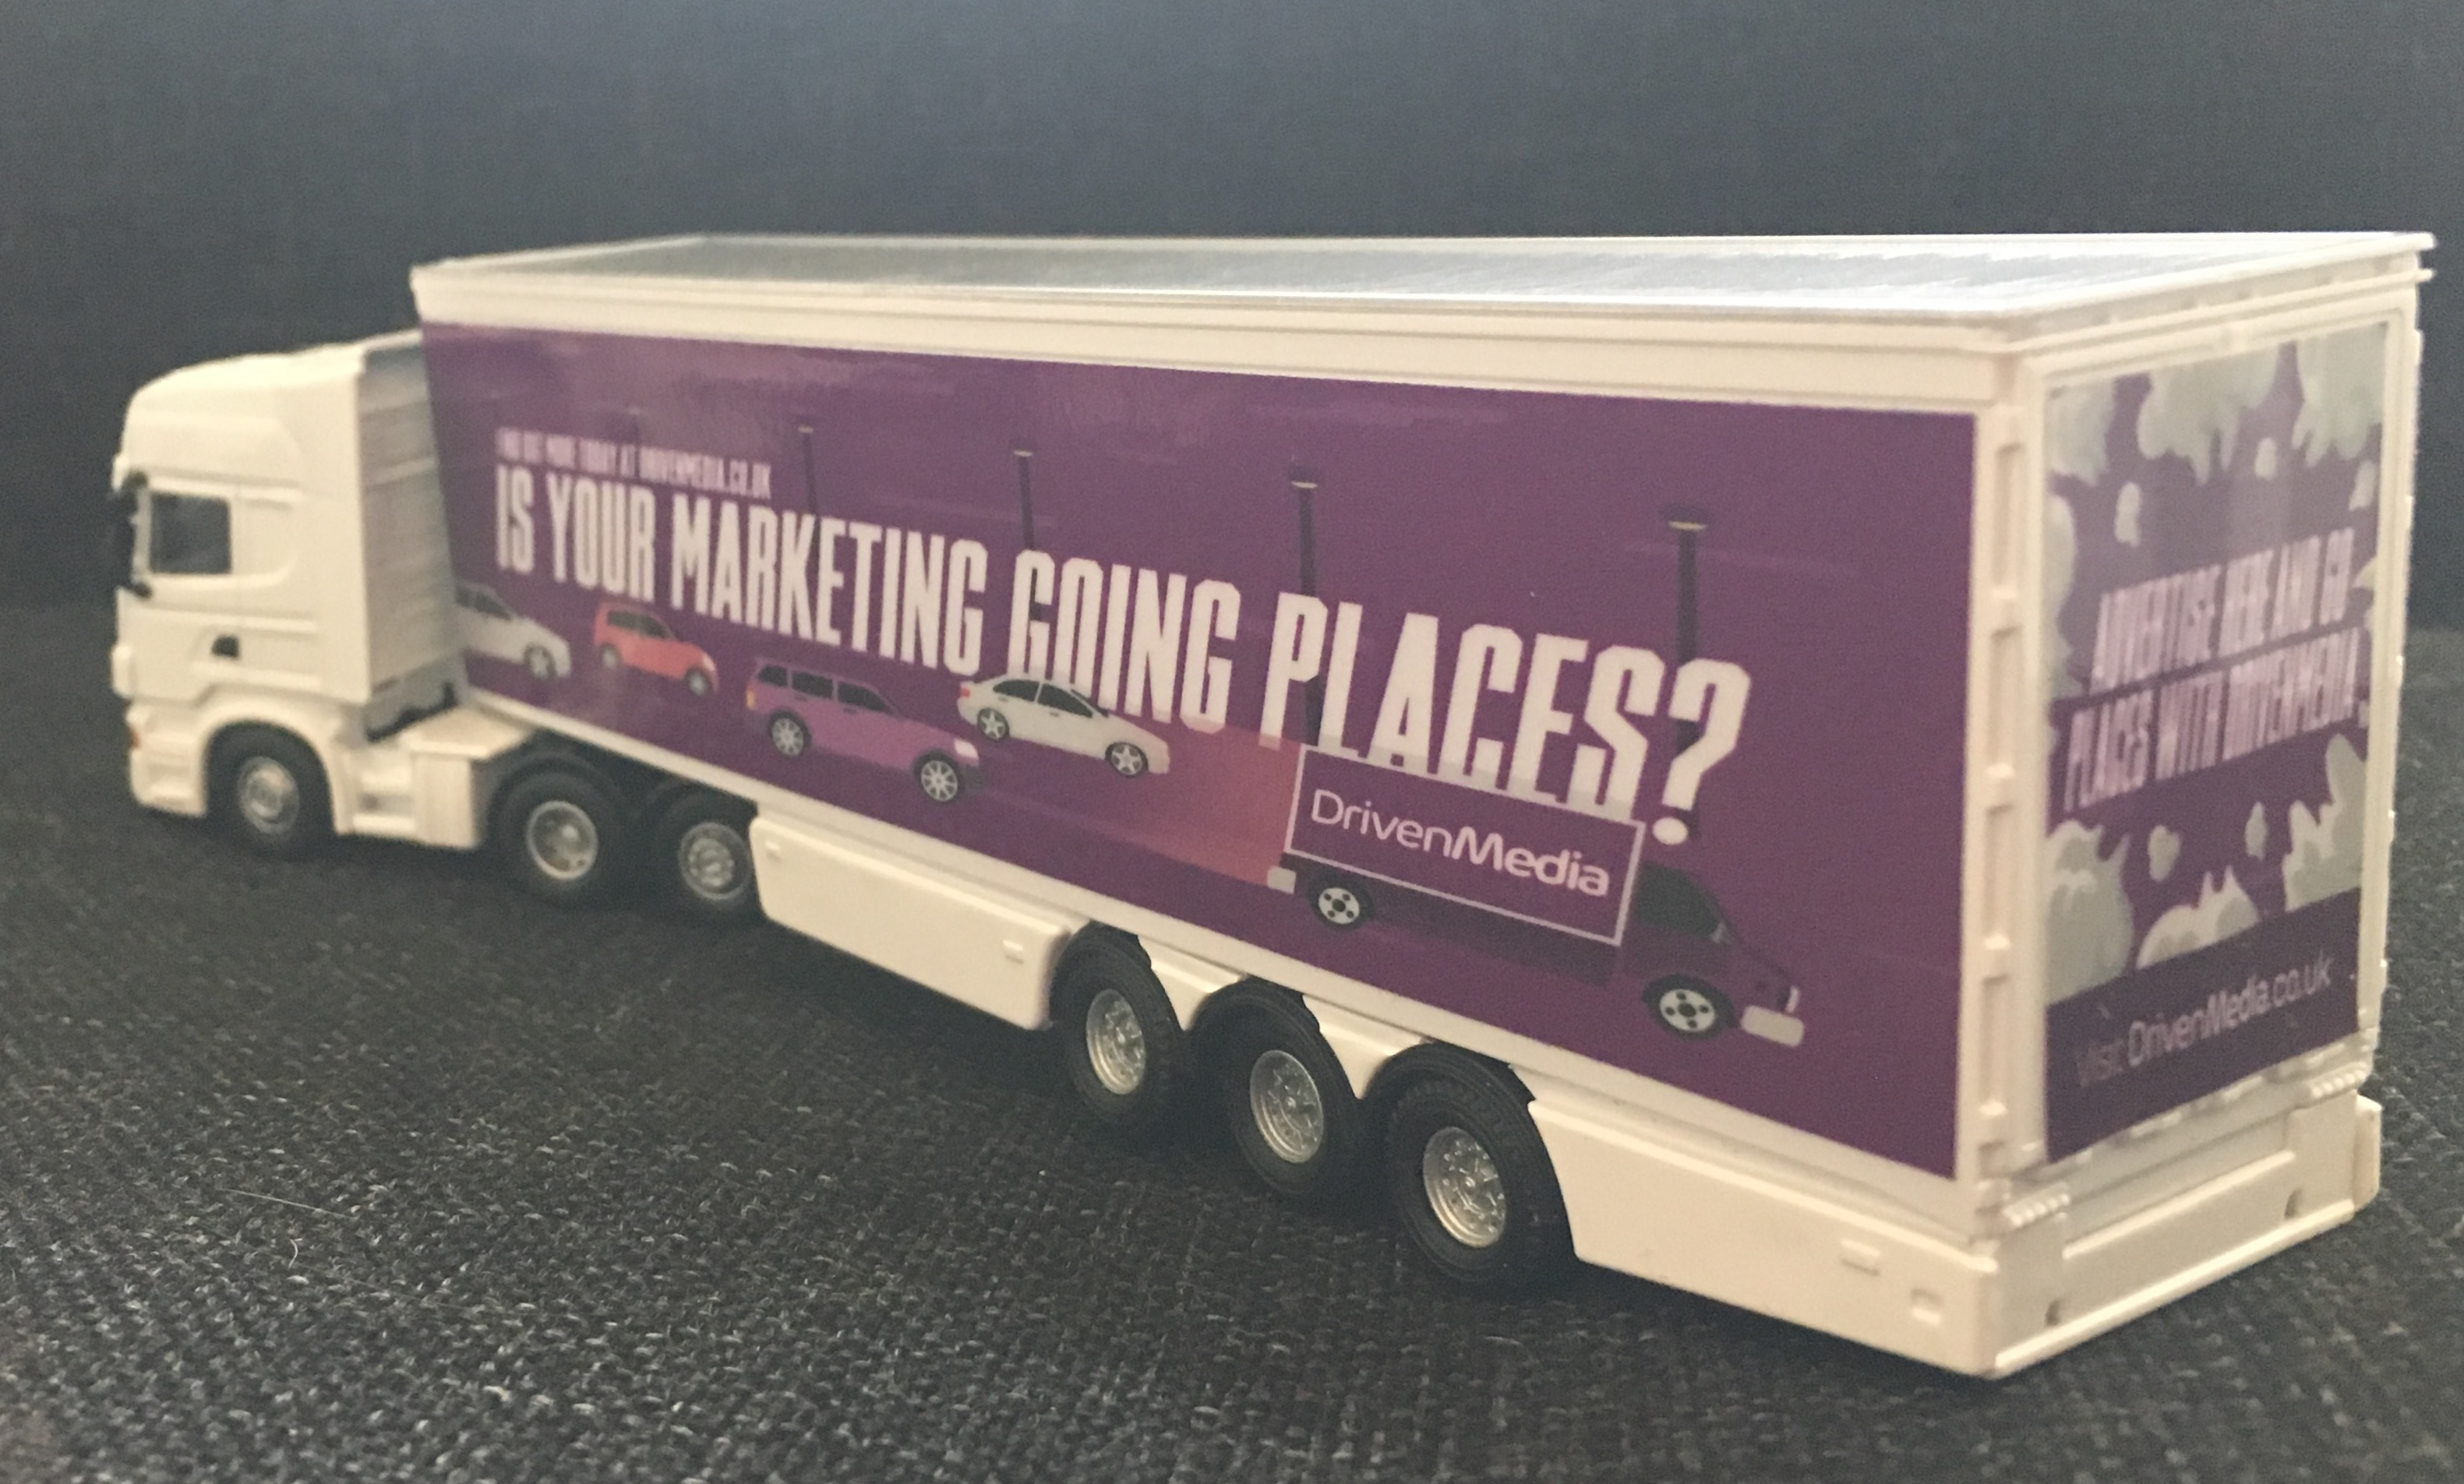 1:76 Scale truck advertising campaign